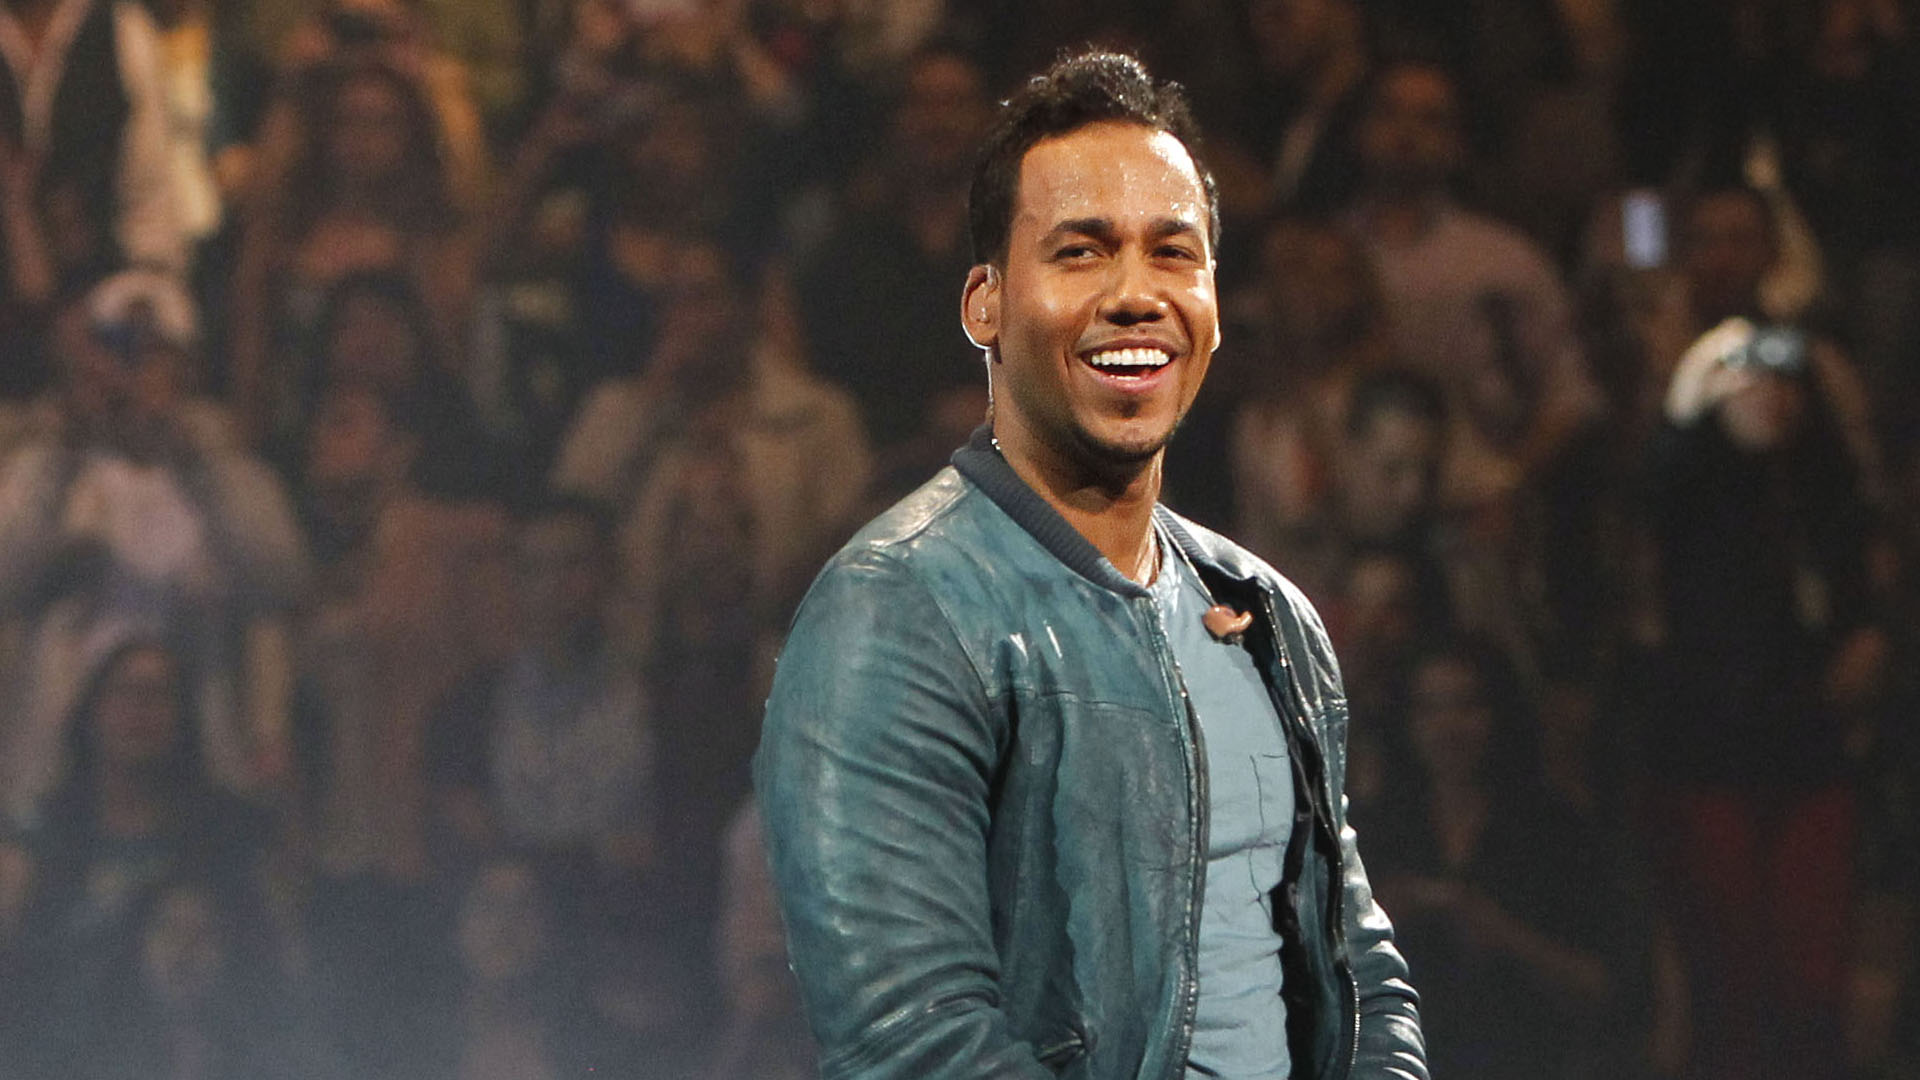 Romeo Santos performs during a concert at Madison Square Garden, Friday, Feb. 24, 2012 in New York. (AP Photo/Jason DeCrow)